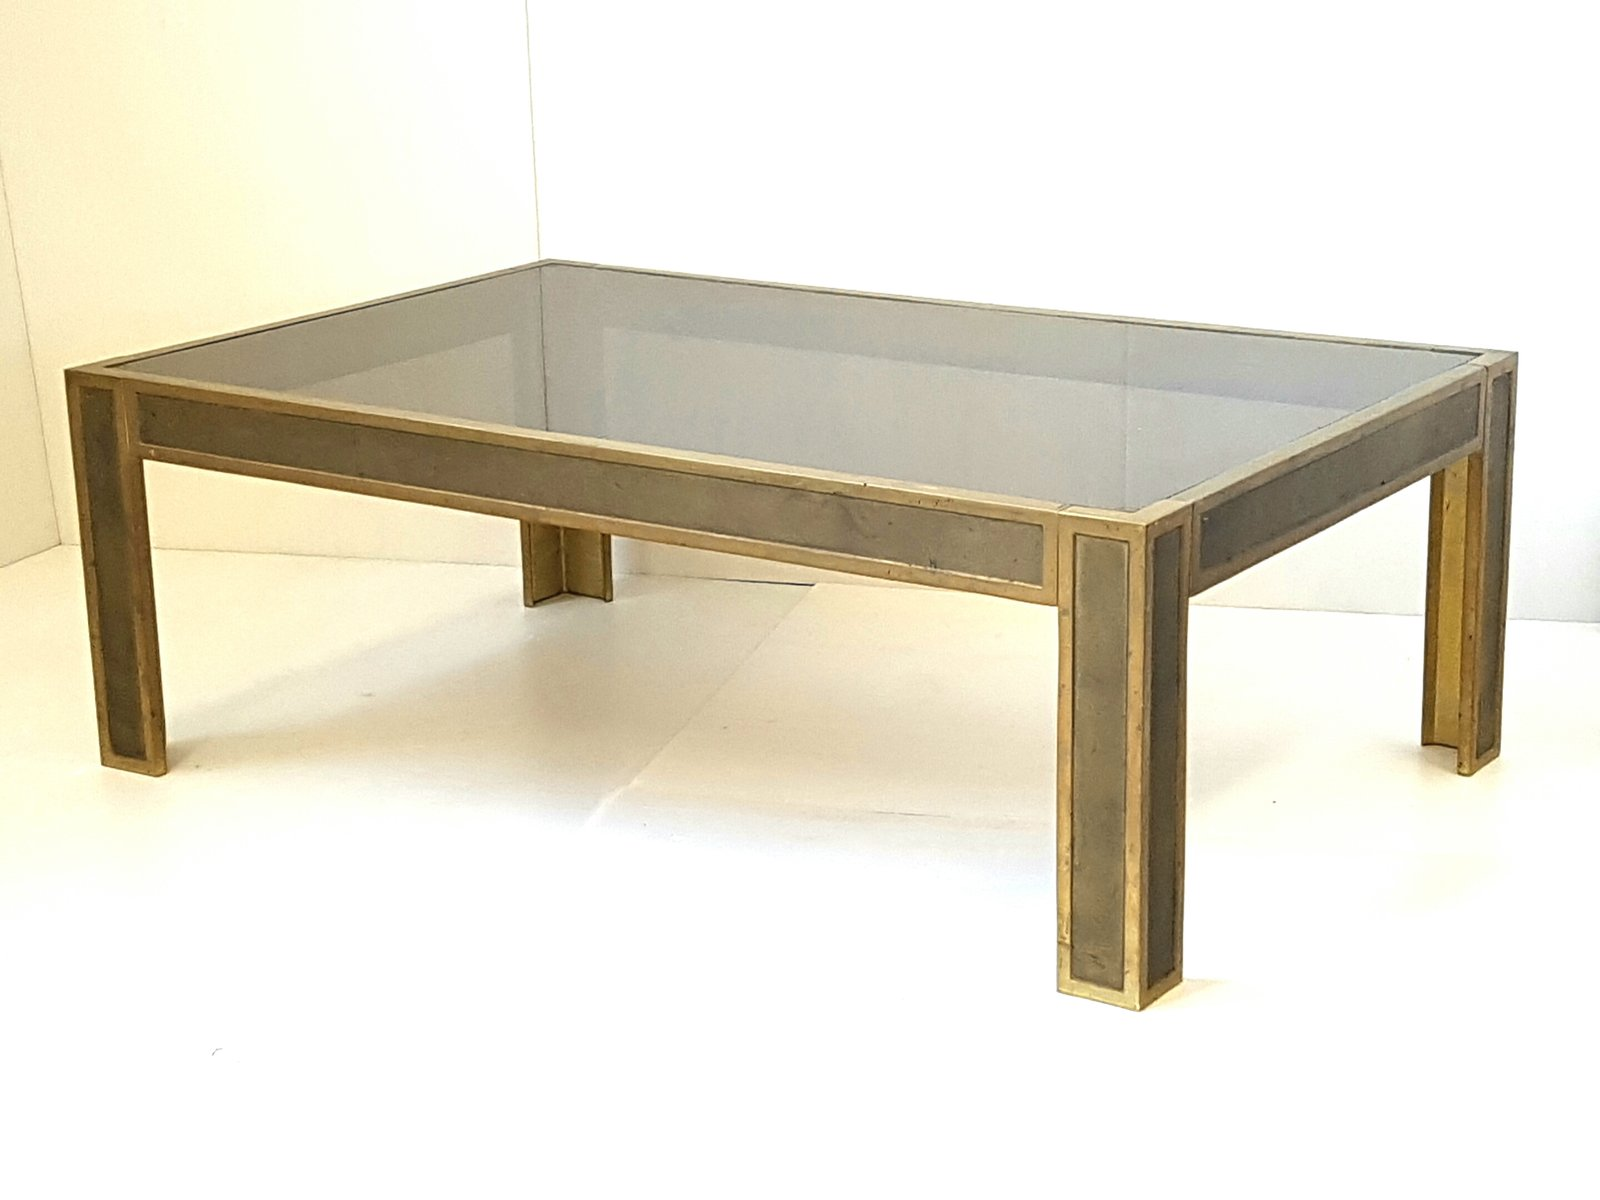 table basse en bronze et en verre fum pays bas 1970s en vente sur pamono. Black Bedroom Furniture Sets. Home Design Ideas